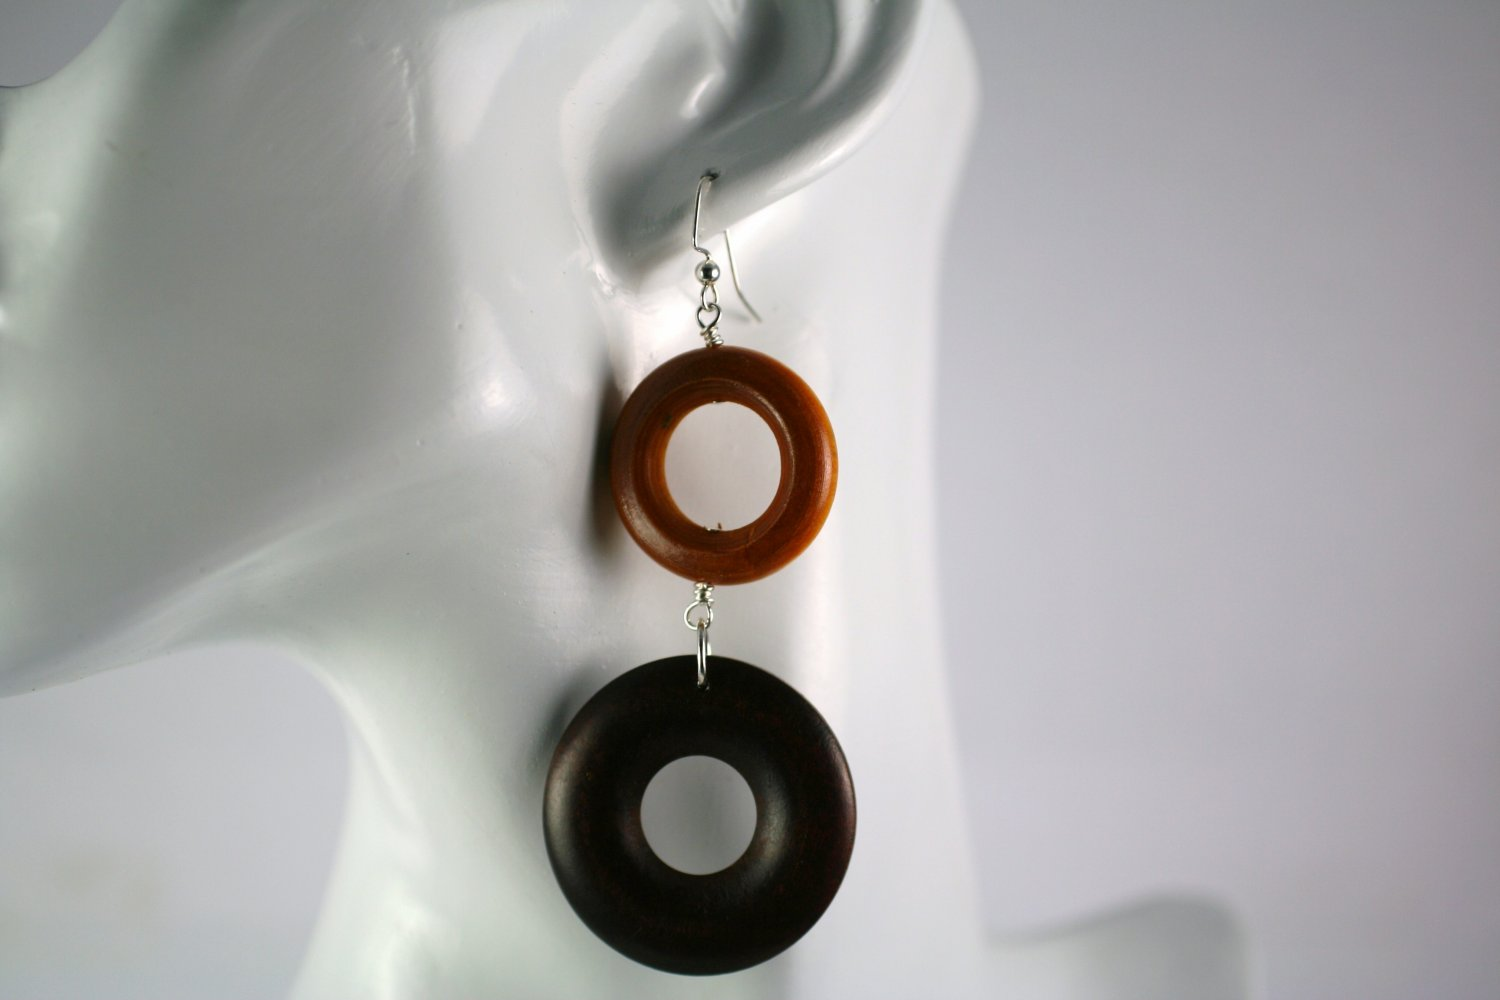 Silver and Wood Double Hoop Dangle Earrings Beads Handcrafted Jewelry